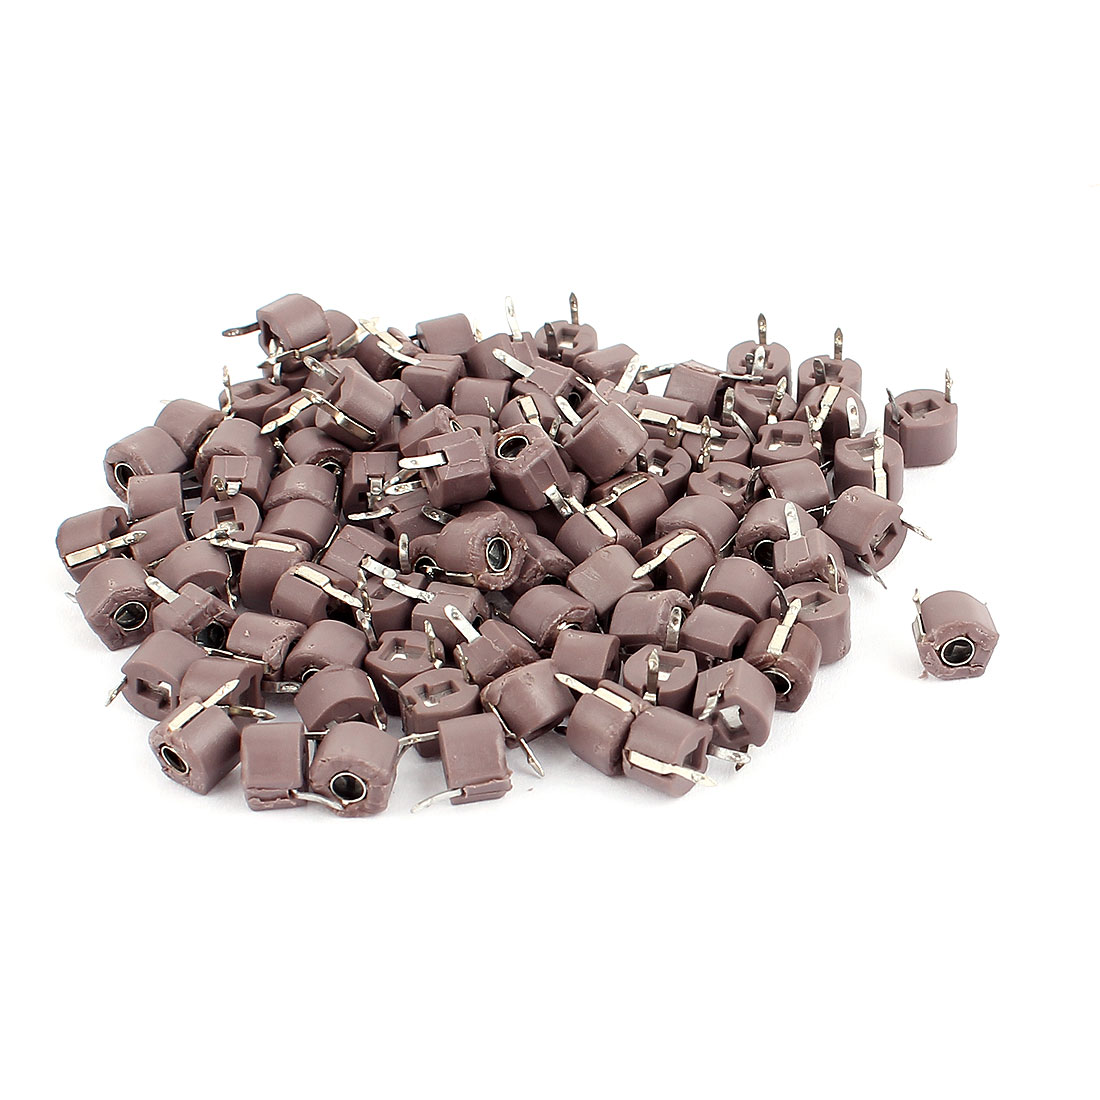 100Pcs Brown Housing 6mm Diameter 120pF Top Adjustable Trimmer Capacitors